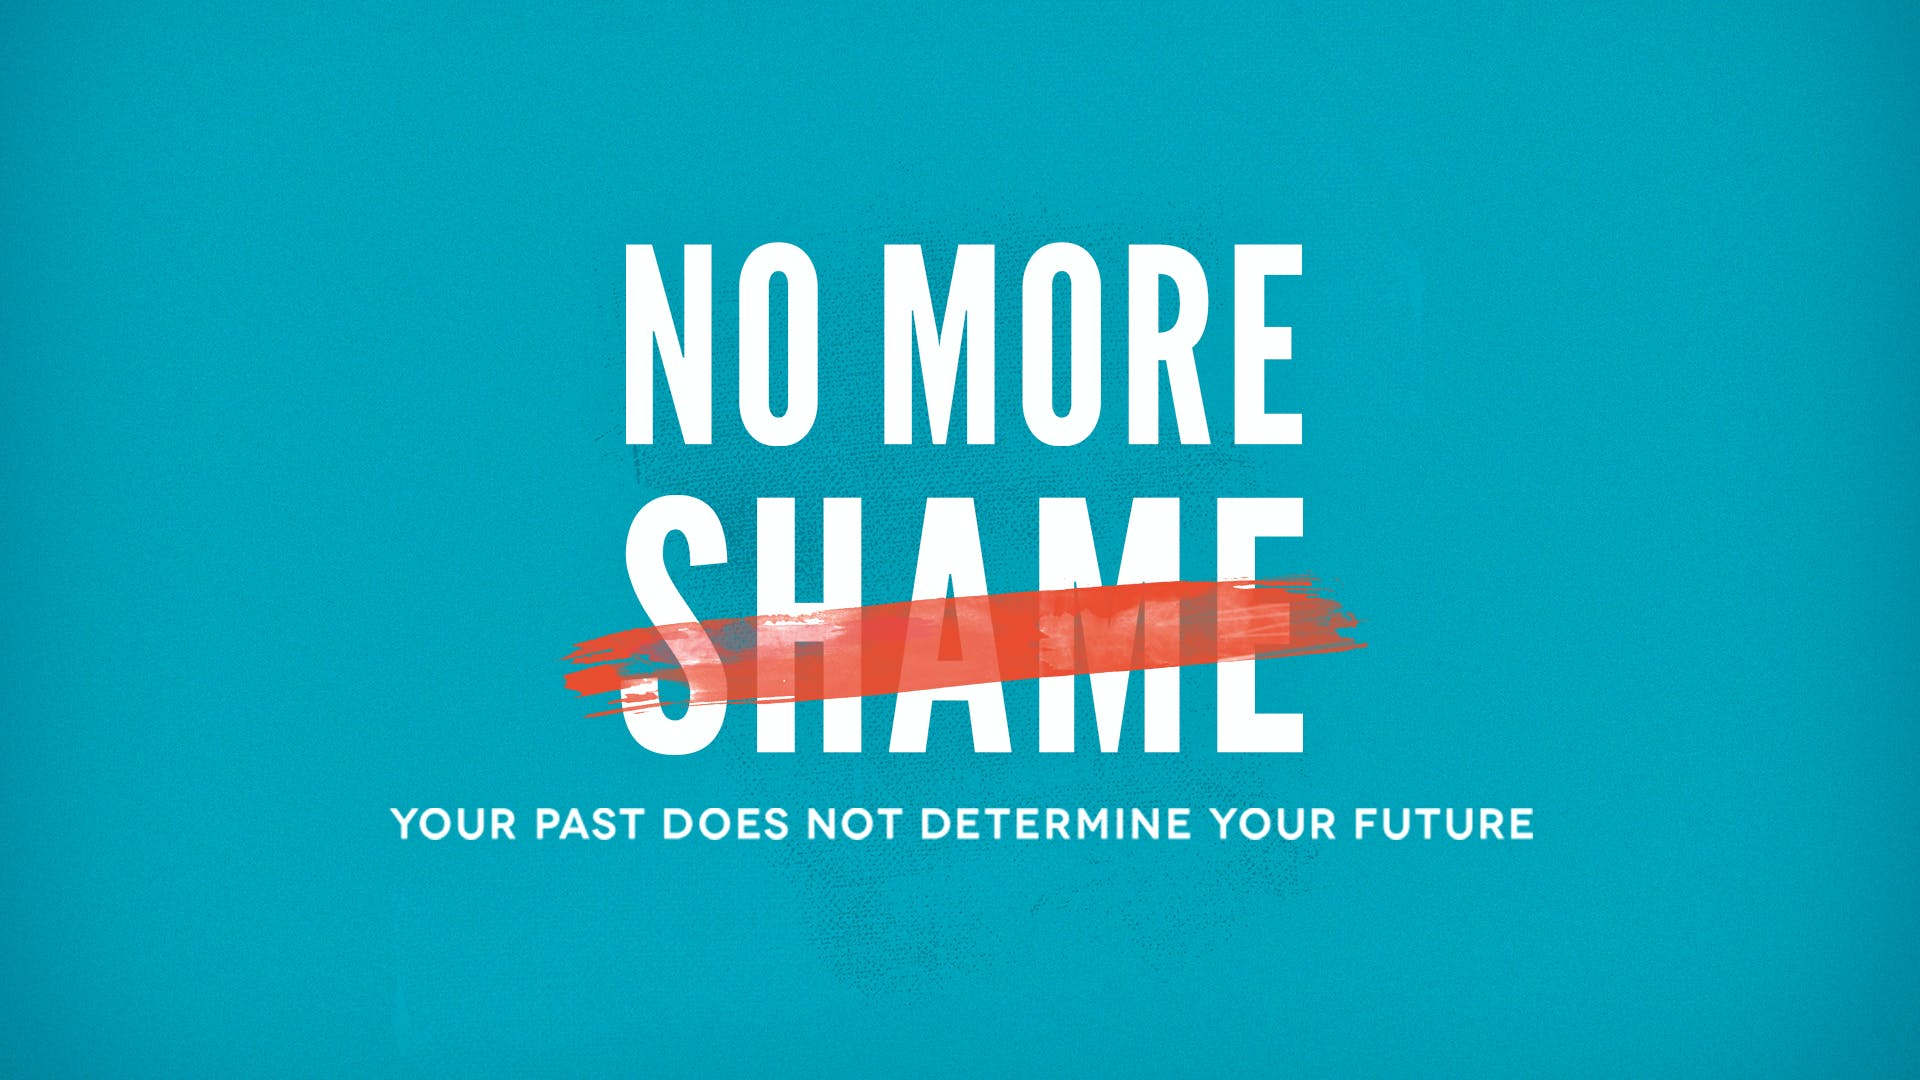 No More Shame—Your Past Does Not Determine Your Future